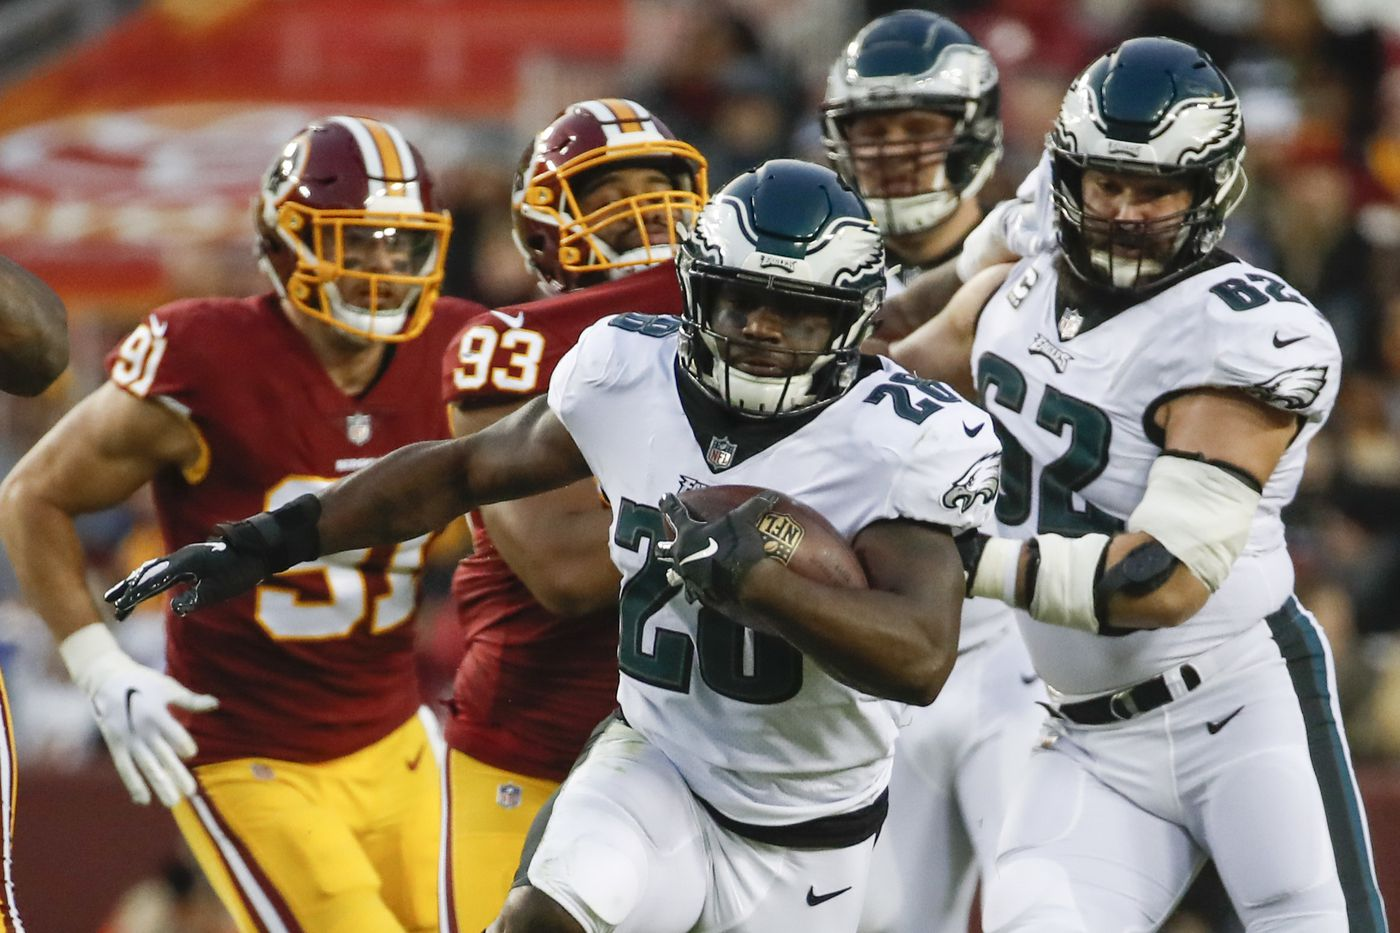 b4c8d9da4 Philadelphia Eagles running back Wendell Smallwood (28) carries the ball  during the first half